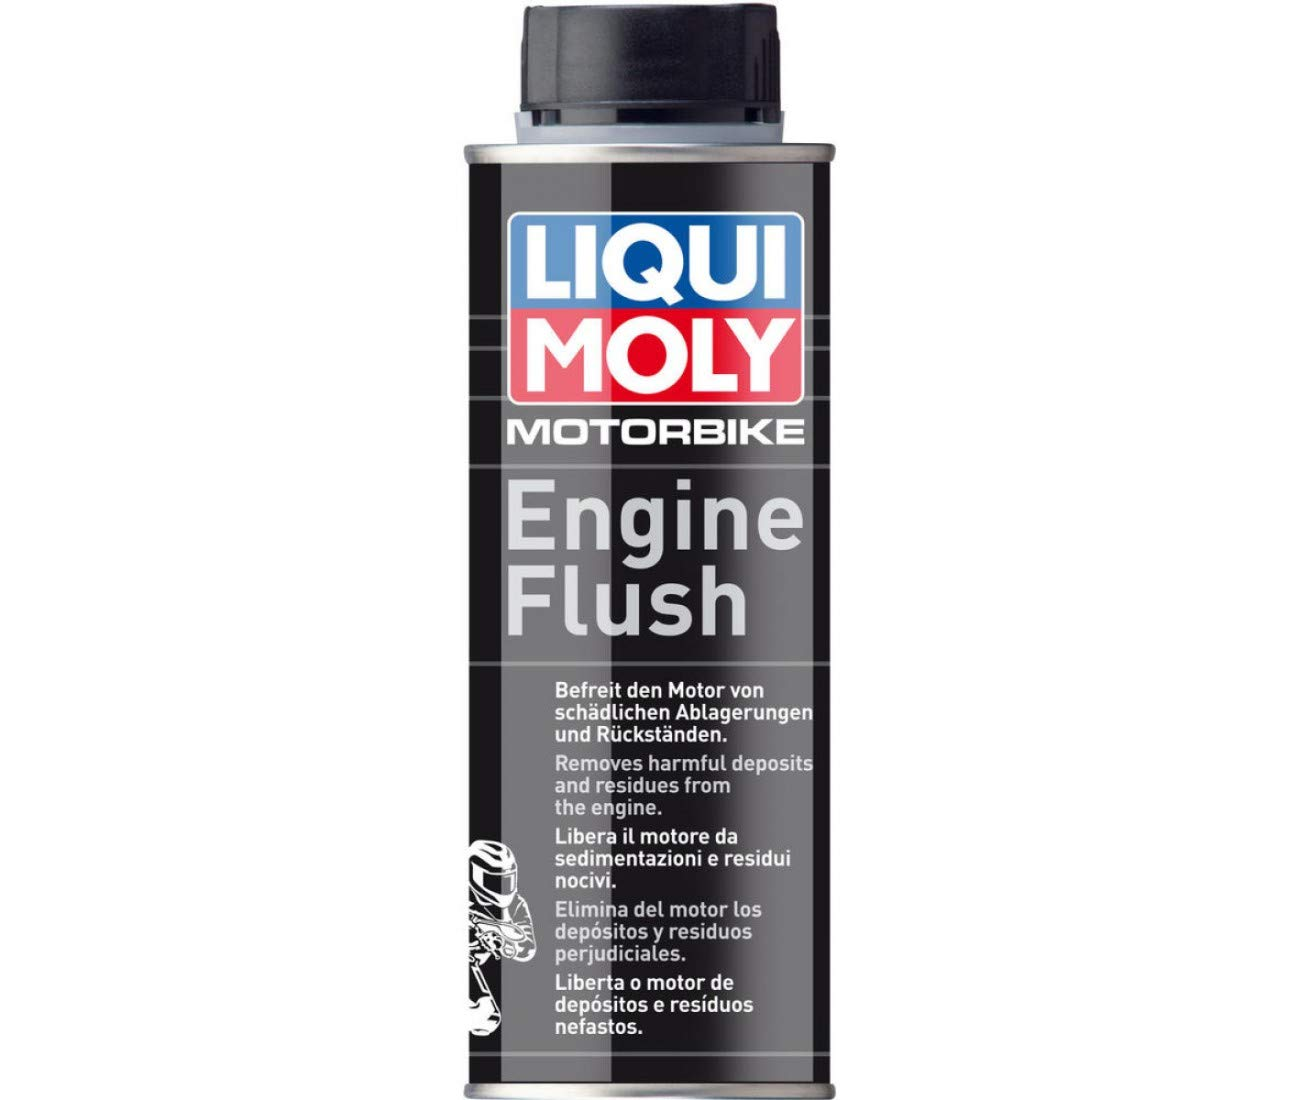 Limpiador Motor/Engine Flush 250 ml Liqui moly-1657: Amazon.es: Coche y moto